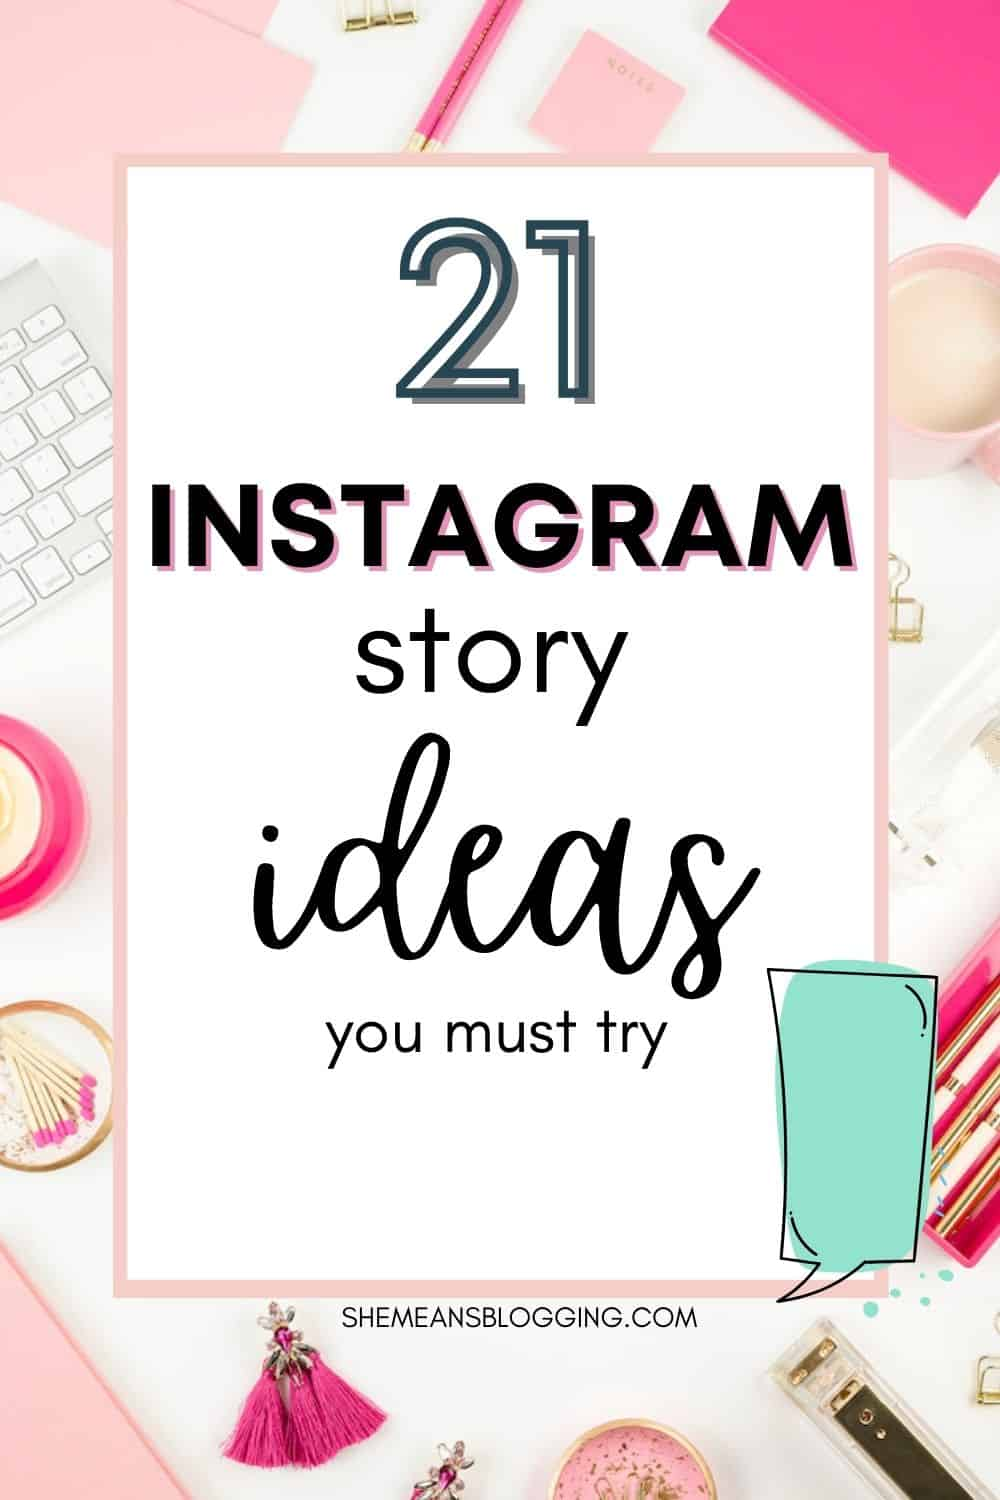 Instagram story ideas to increase engagement rate. What type of Instagram captions do well? Or, maybe, instagram photo ideas? Here are 21 most popular yet engaging instagram story ideas to kick off engagement with followers #instagrammarketingtips